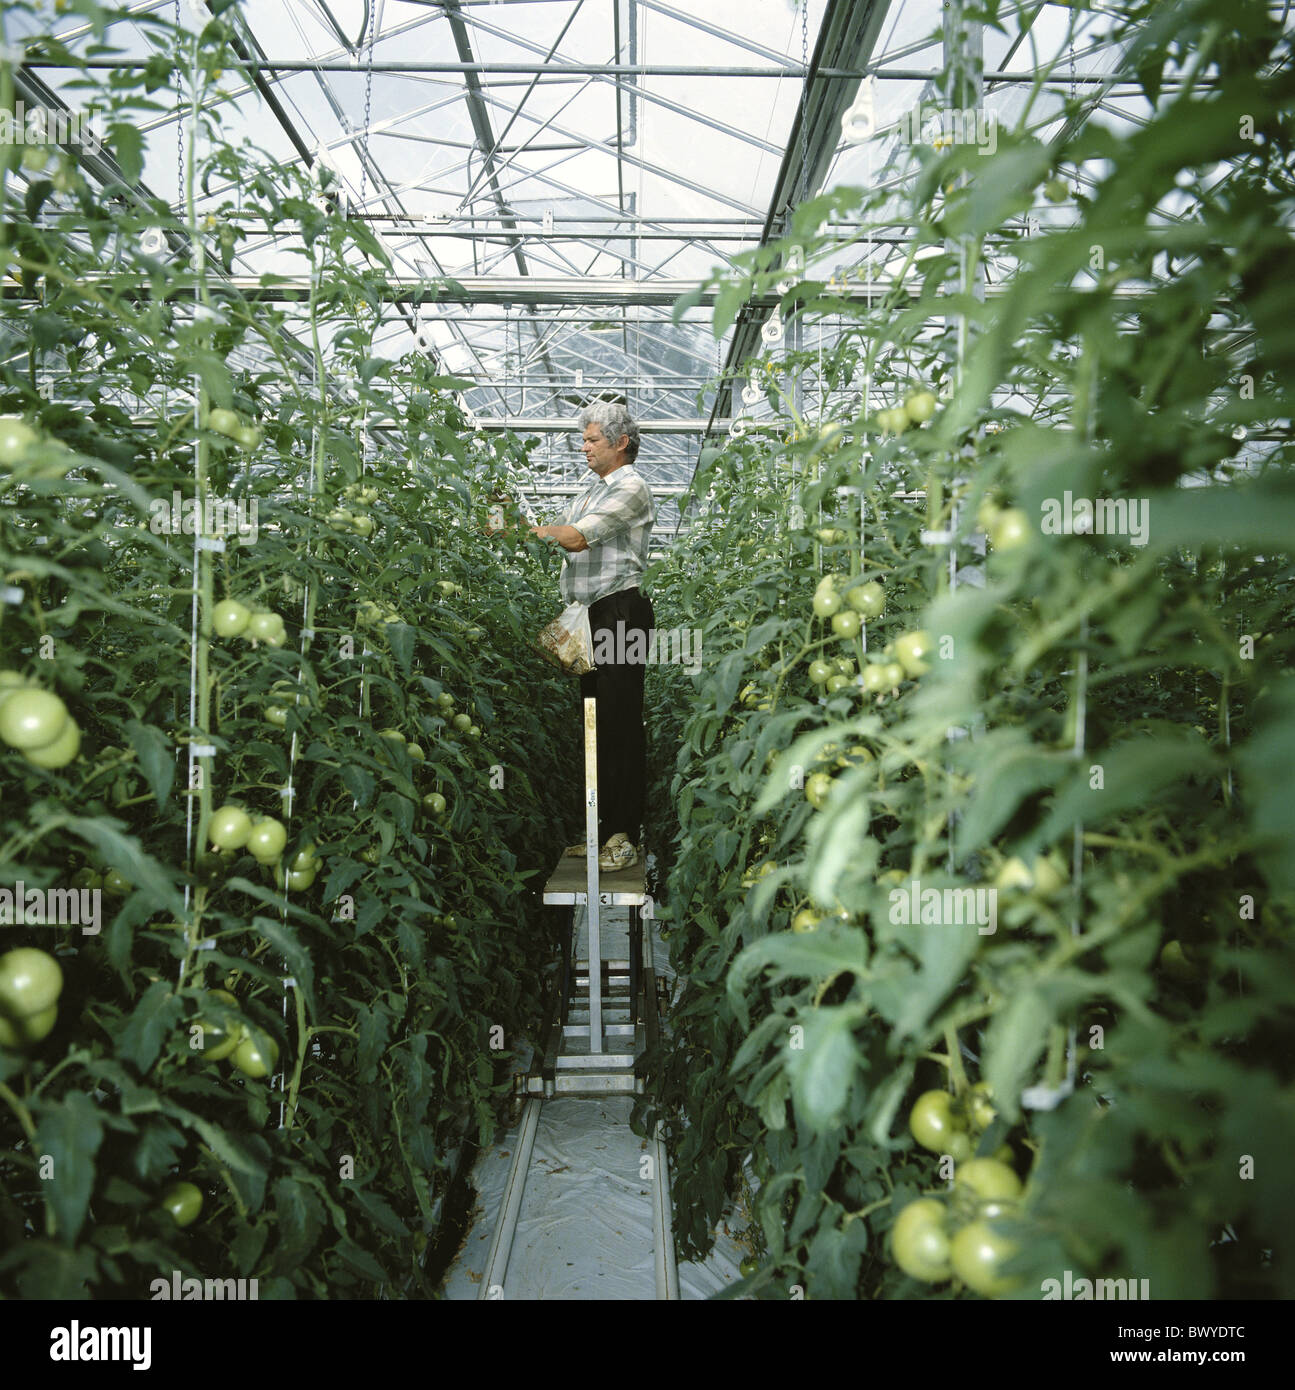 worker vegetables green Hors Sol boxes rows tomatoes hothouse